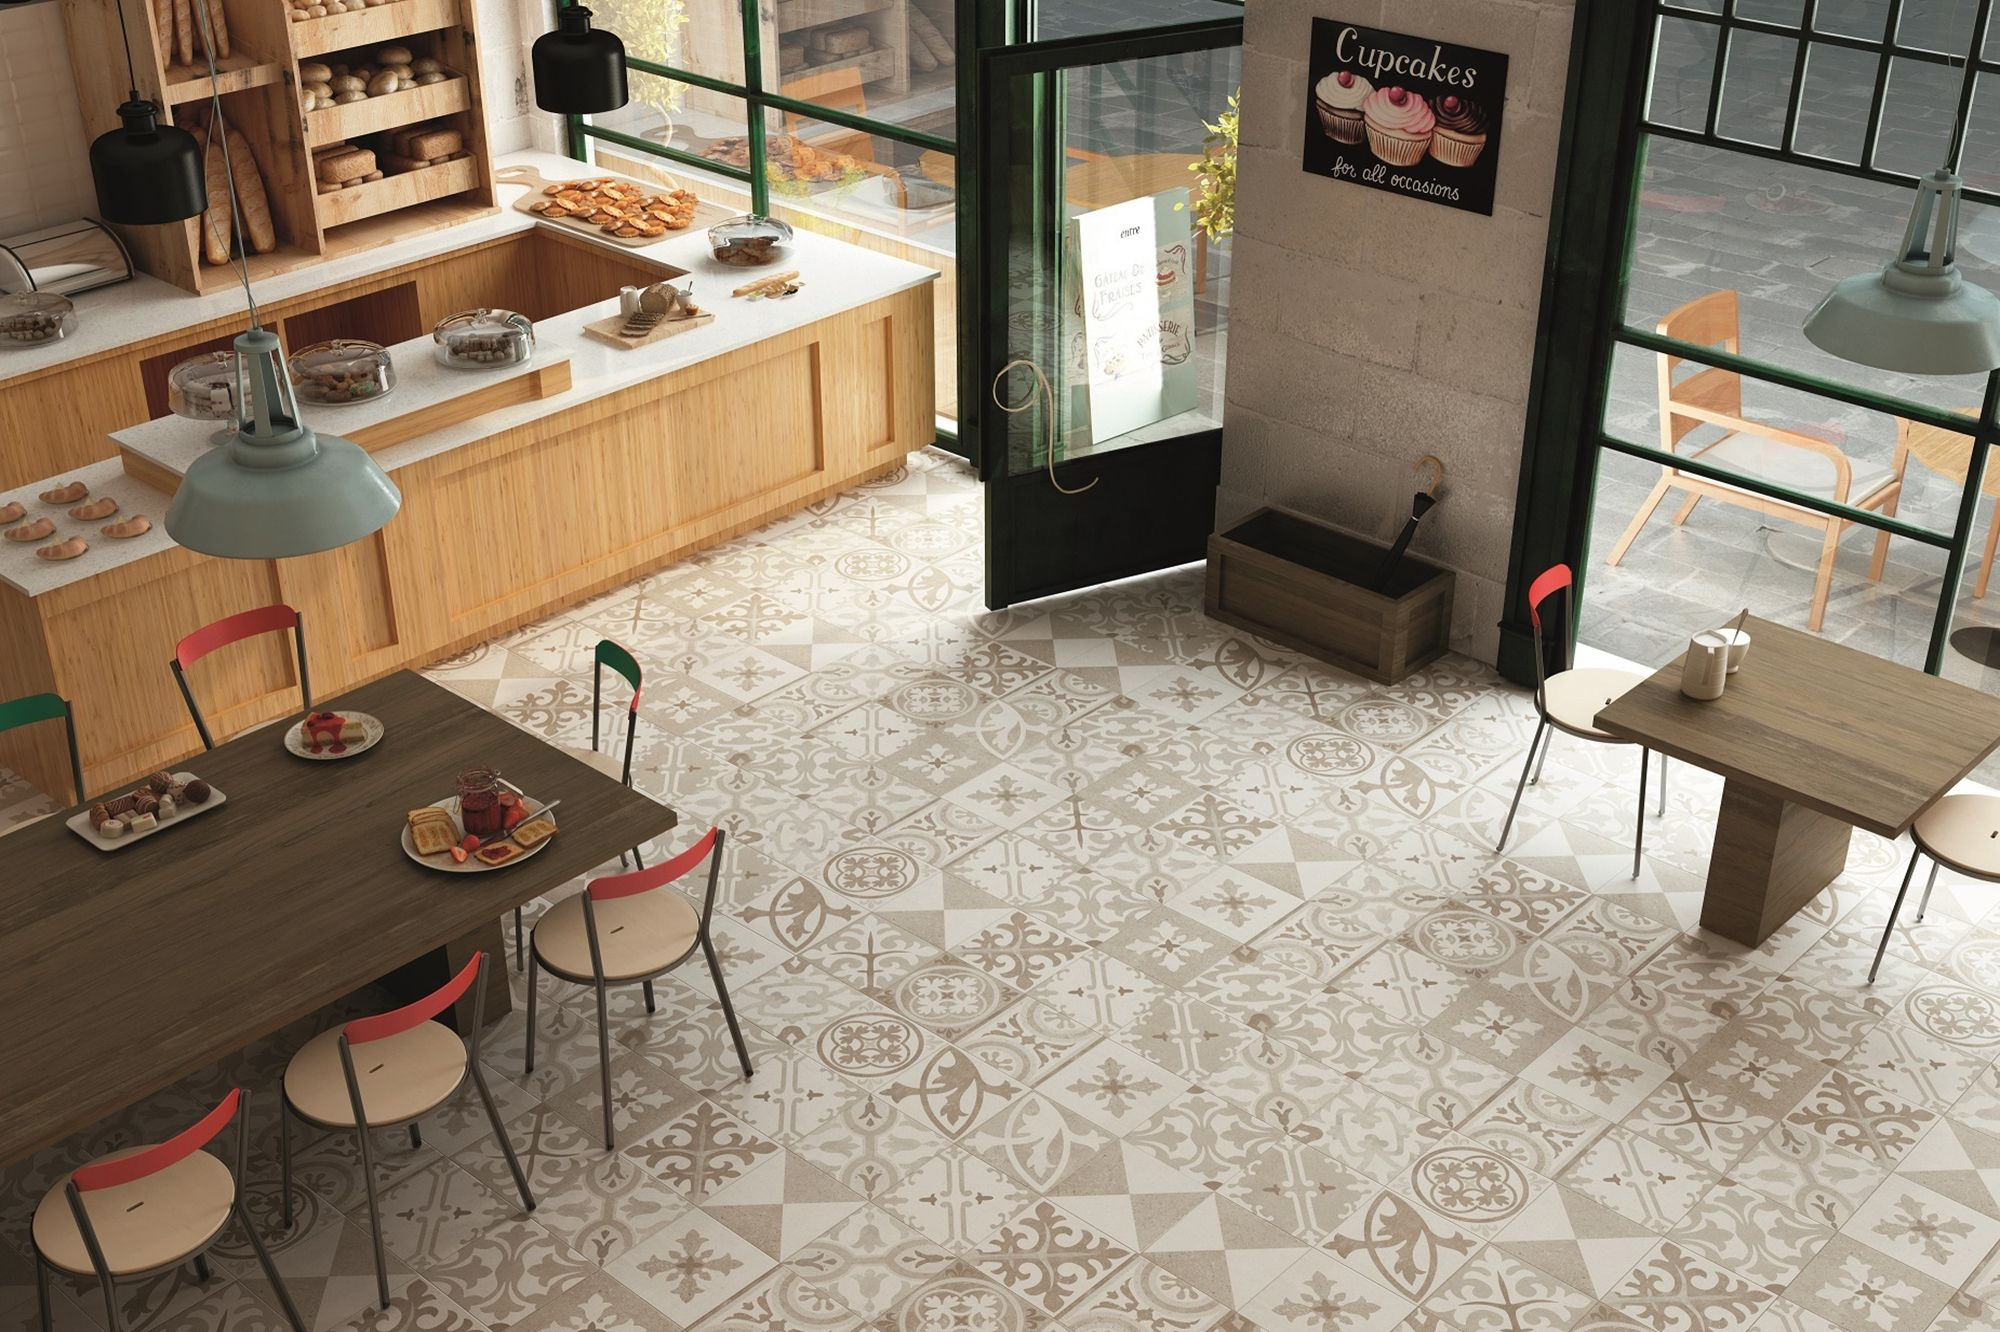 ikea kitchen flooring aparici retro tiles tiles porcelain 1785